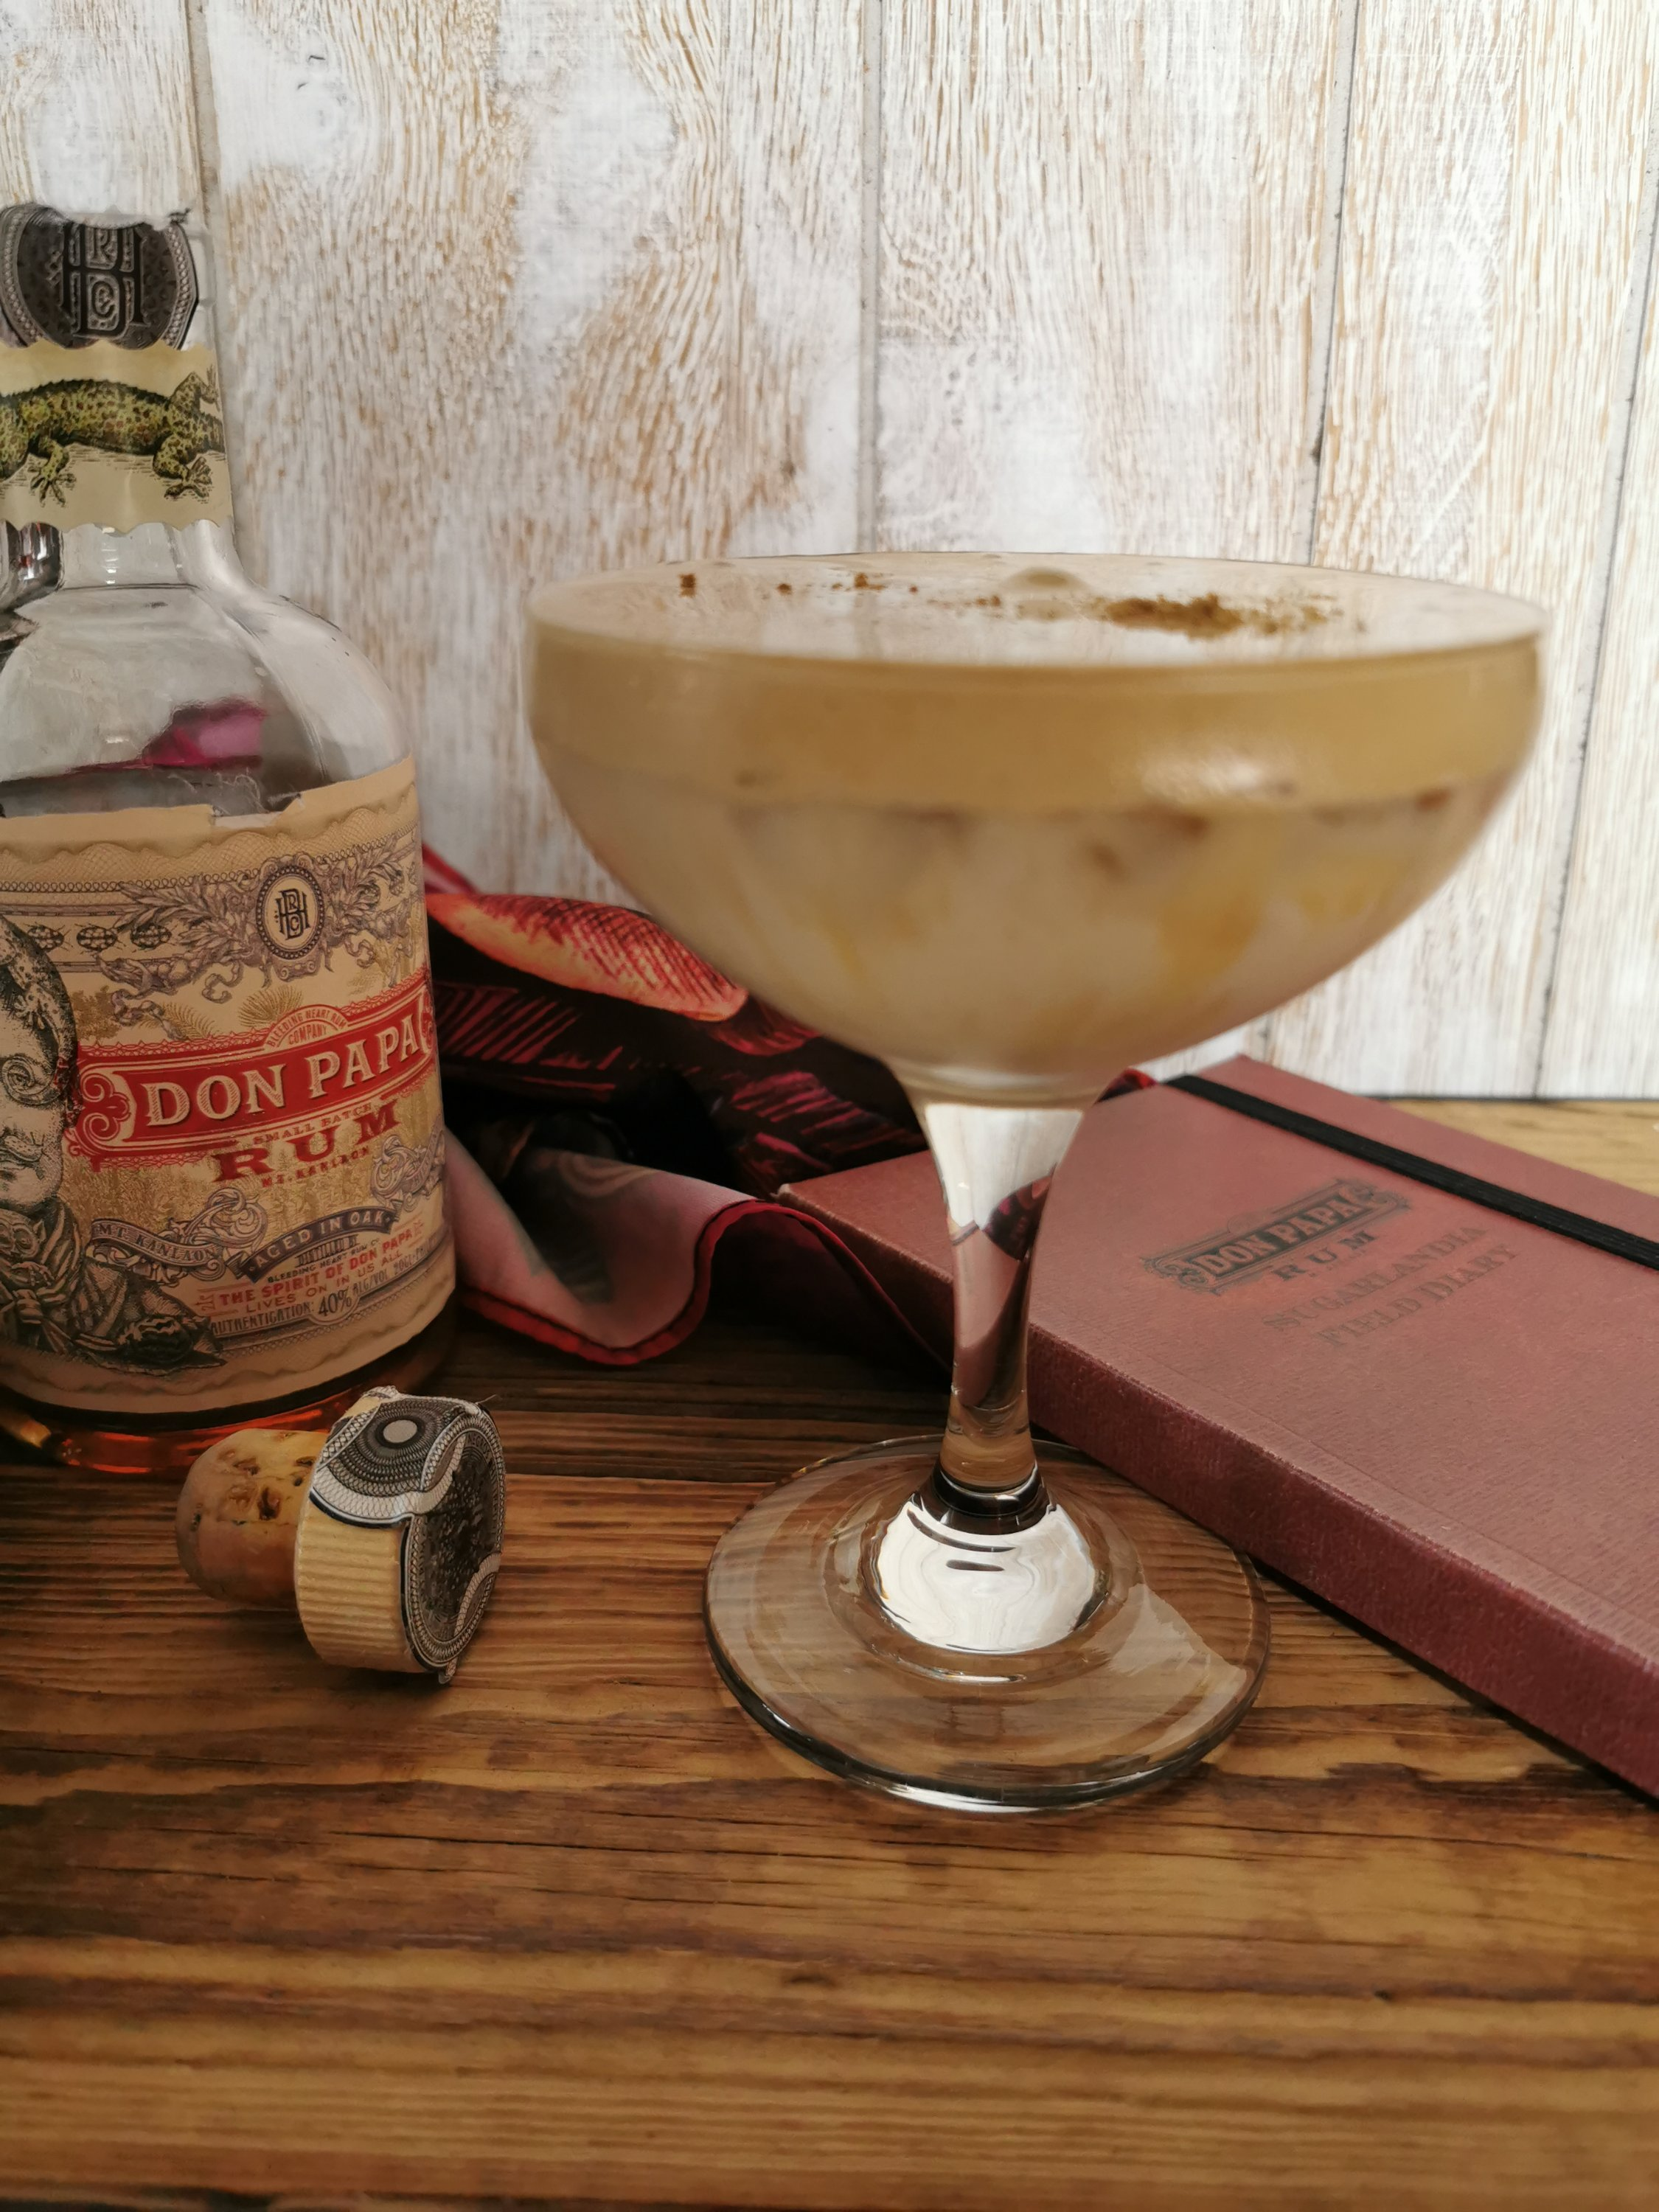 Dalgona coffee met Don Papa rum